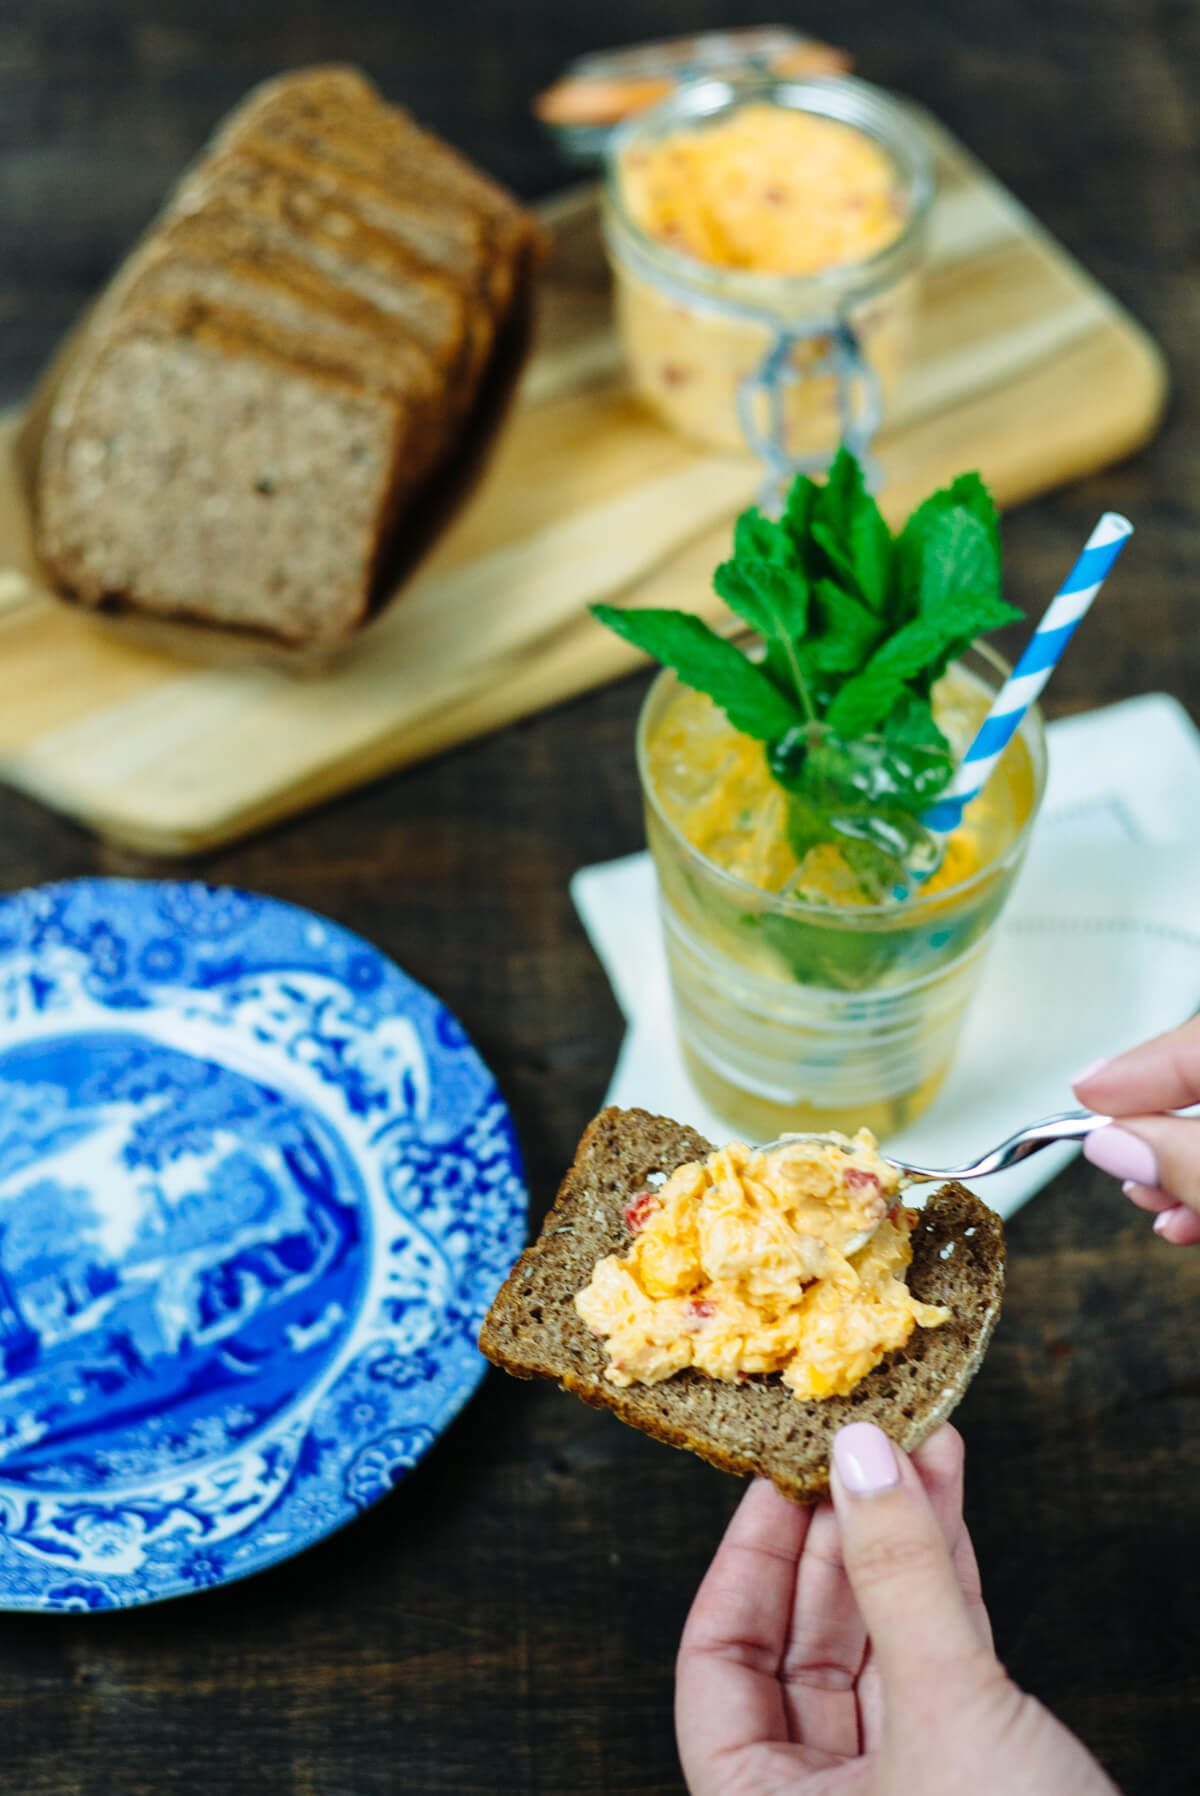 mint juleps can be served in modern glasses and served with pimento cheese for the Kentucky Derby